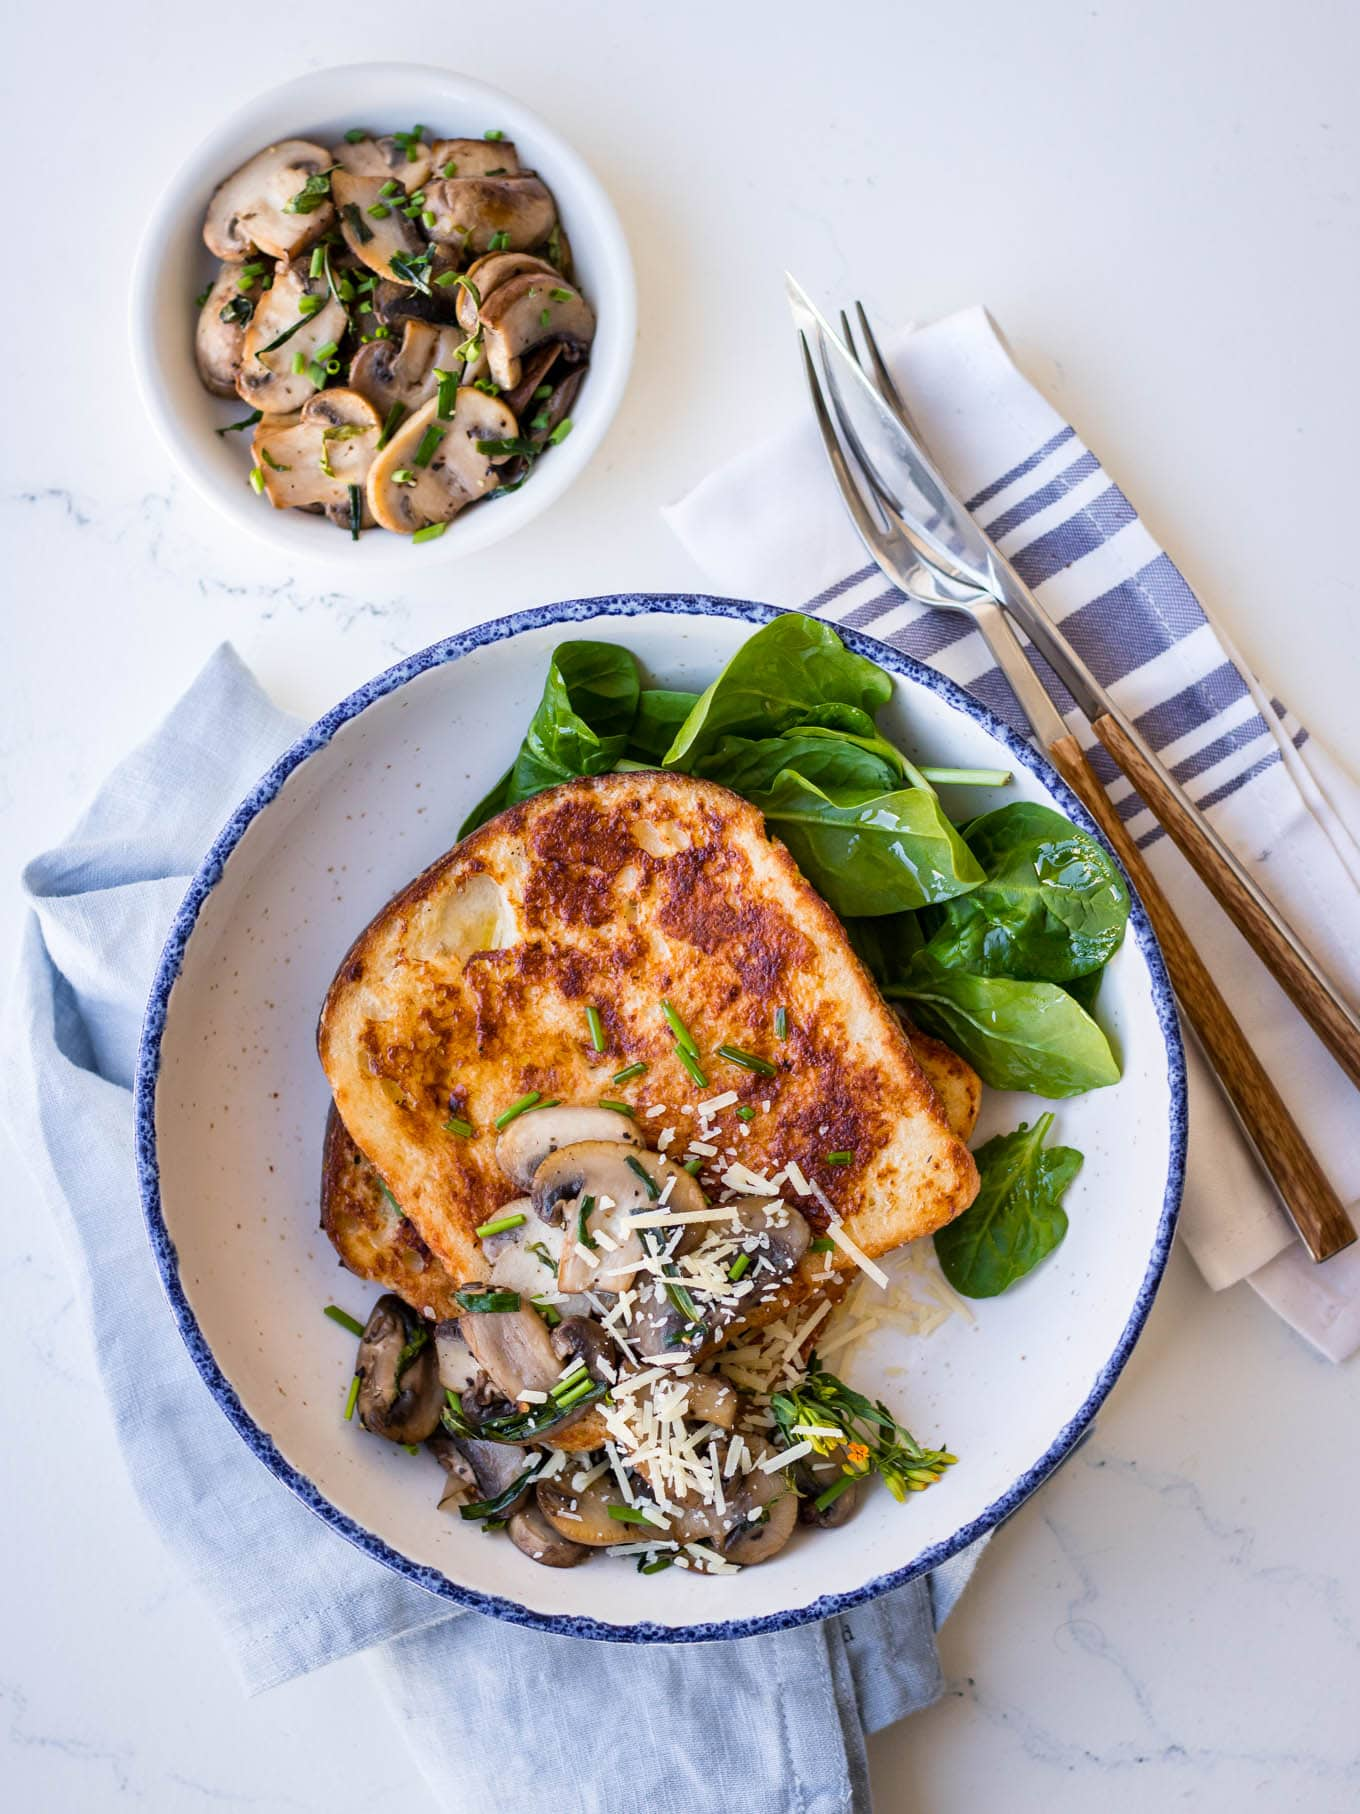 Savoury french toast with mushrooms and grated parmesan